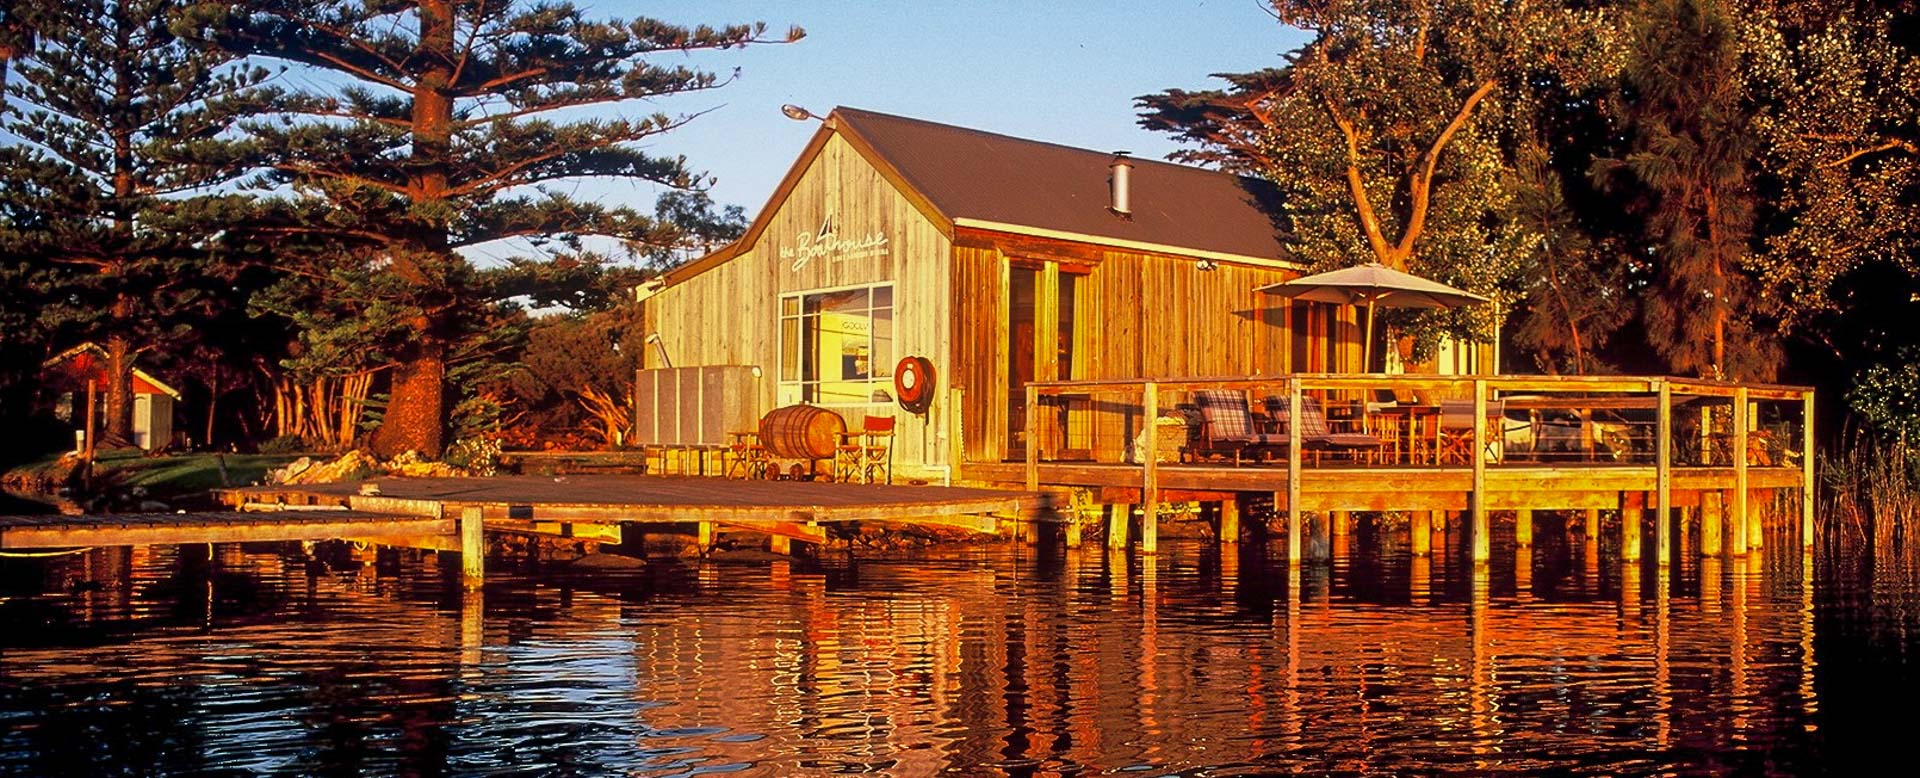 Commercial Photography Adelaide. Boathouse & Birks River Retreats.